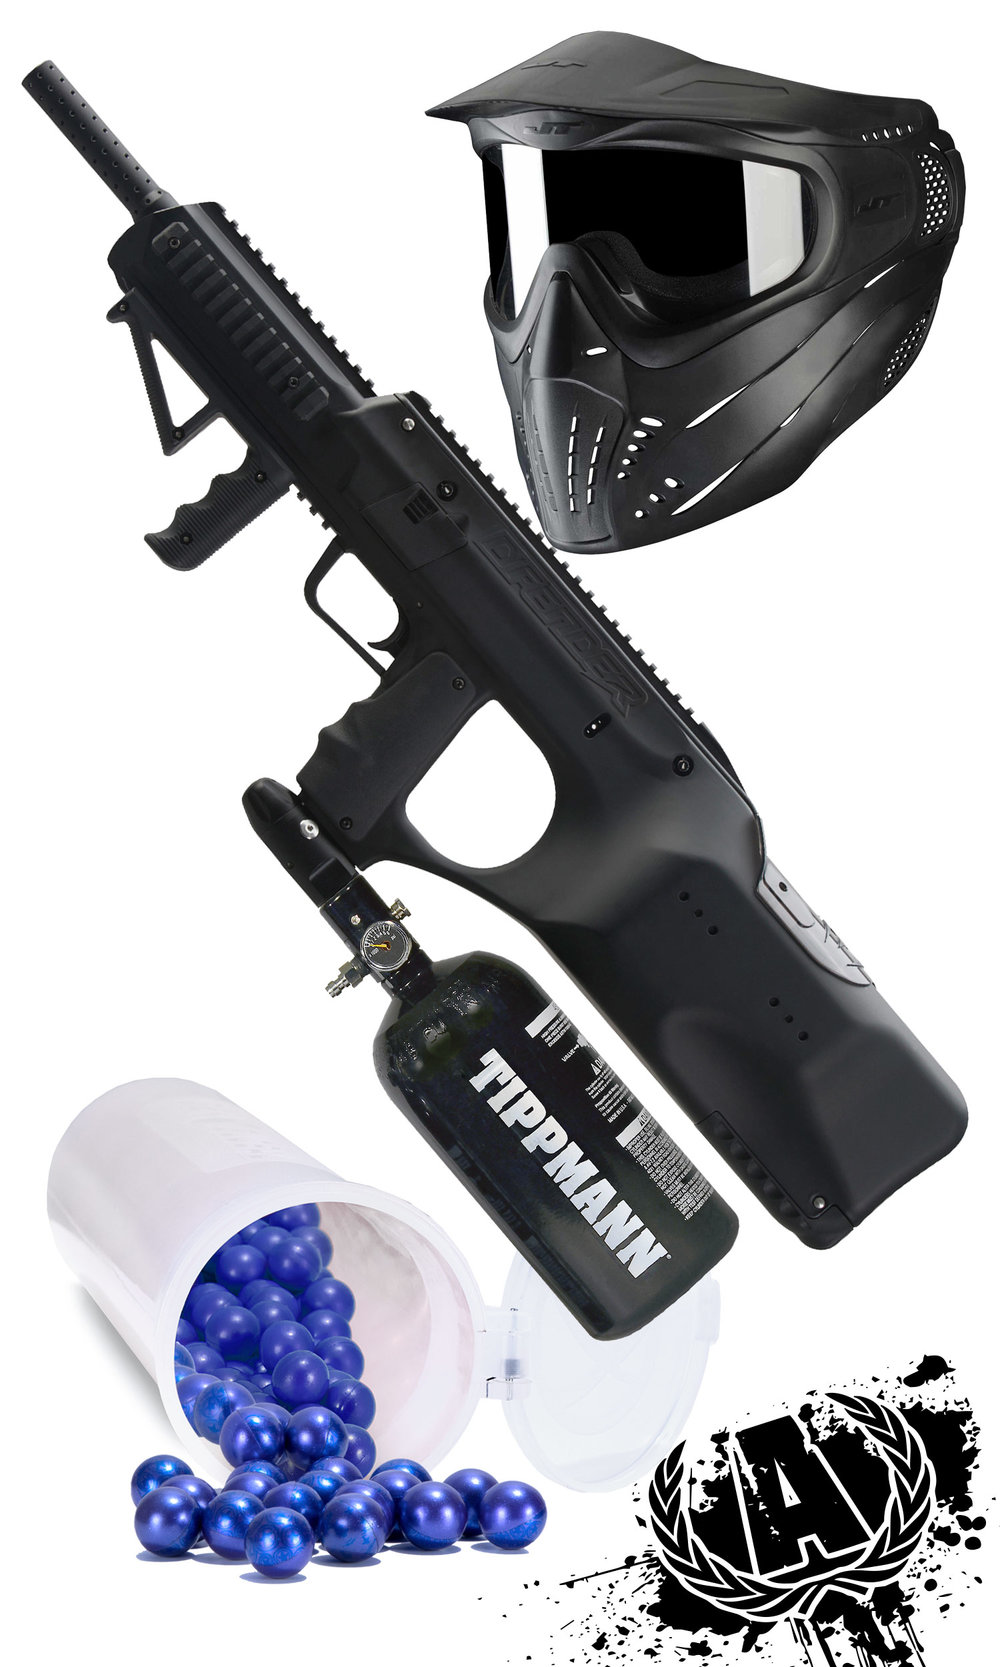 Gun Upgrade     Click to learn more about this amazing product     $69.99     Comes with 640 rounds of paintballs, mask, air tank, all day entry, all day air and a paintball vest